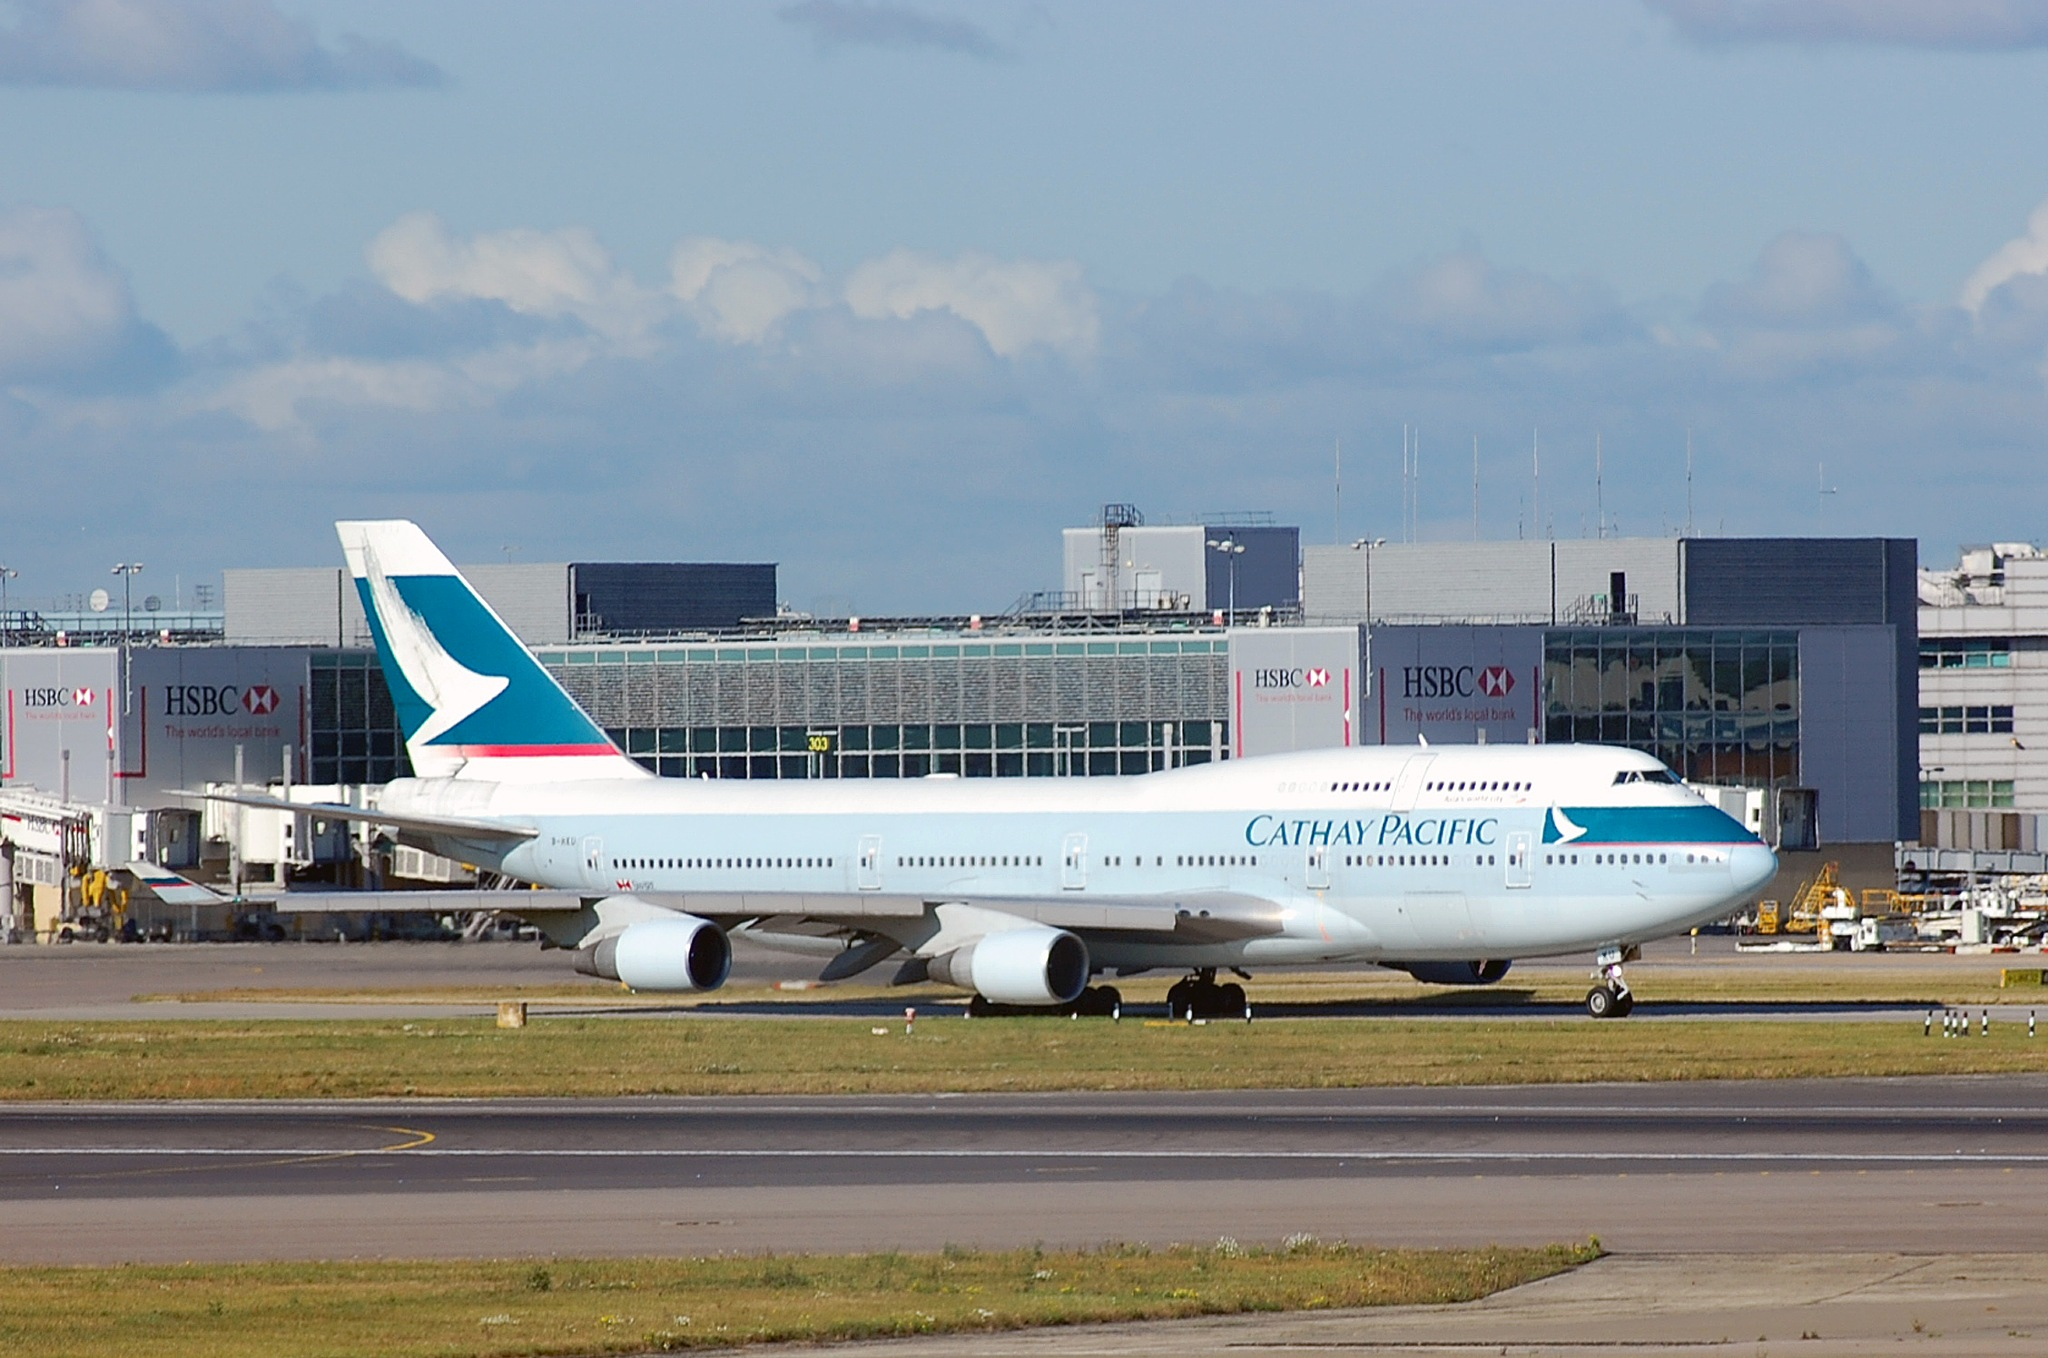 Cathey Pacific 747 B-ARD by homicidal45